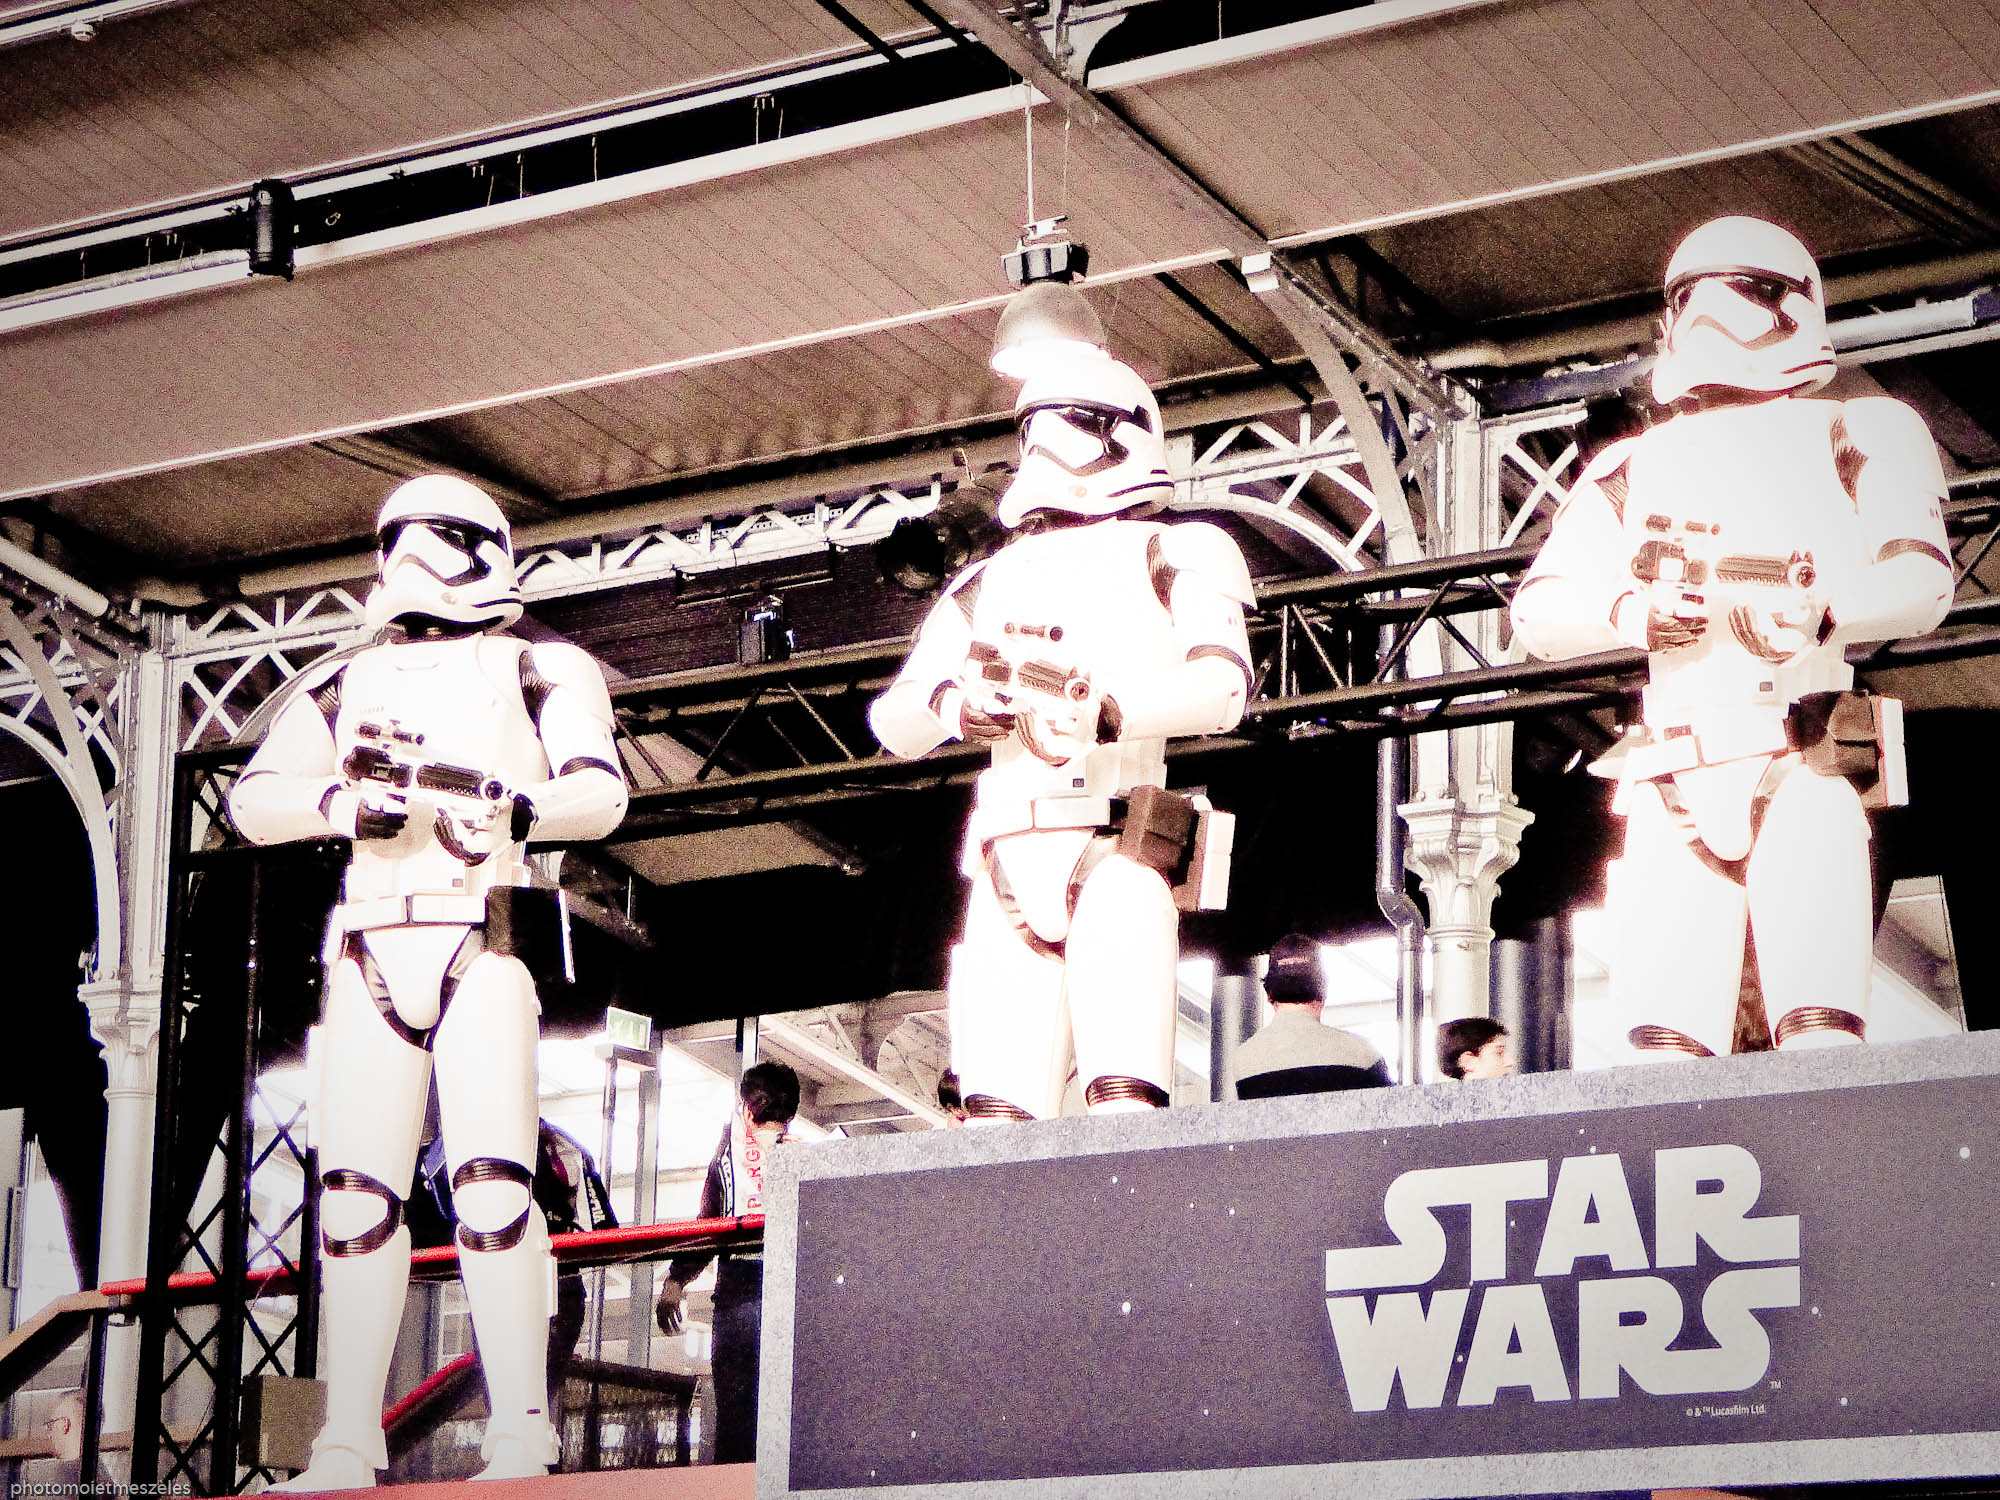 Star wars expo Paris 2017 Comic con